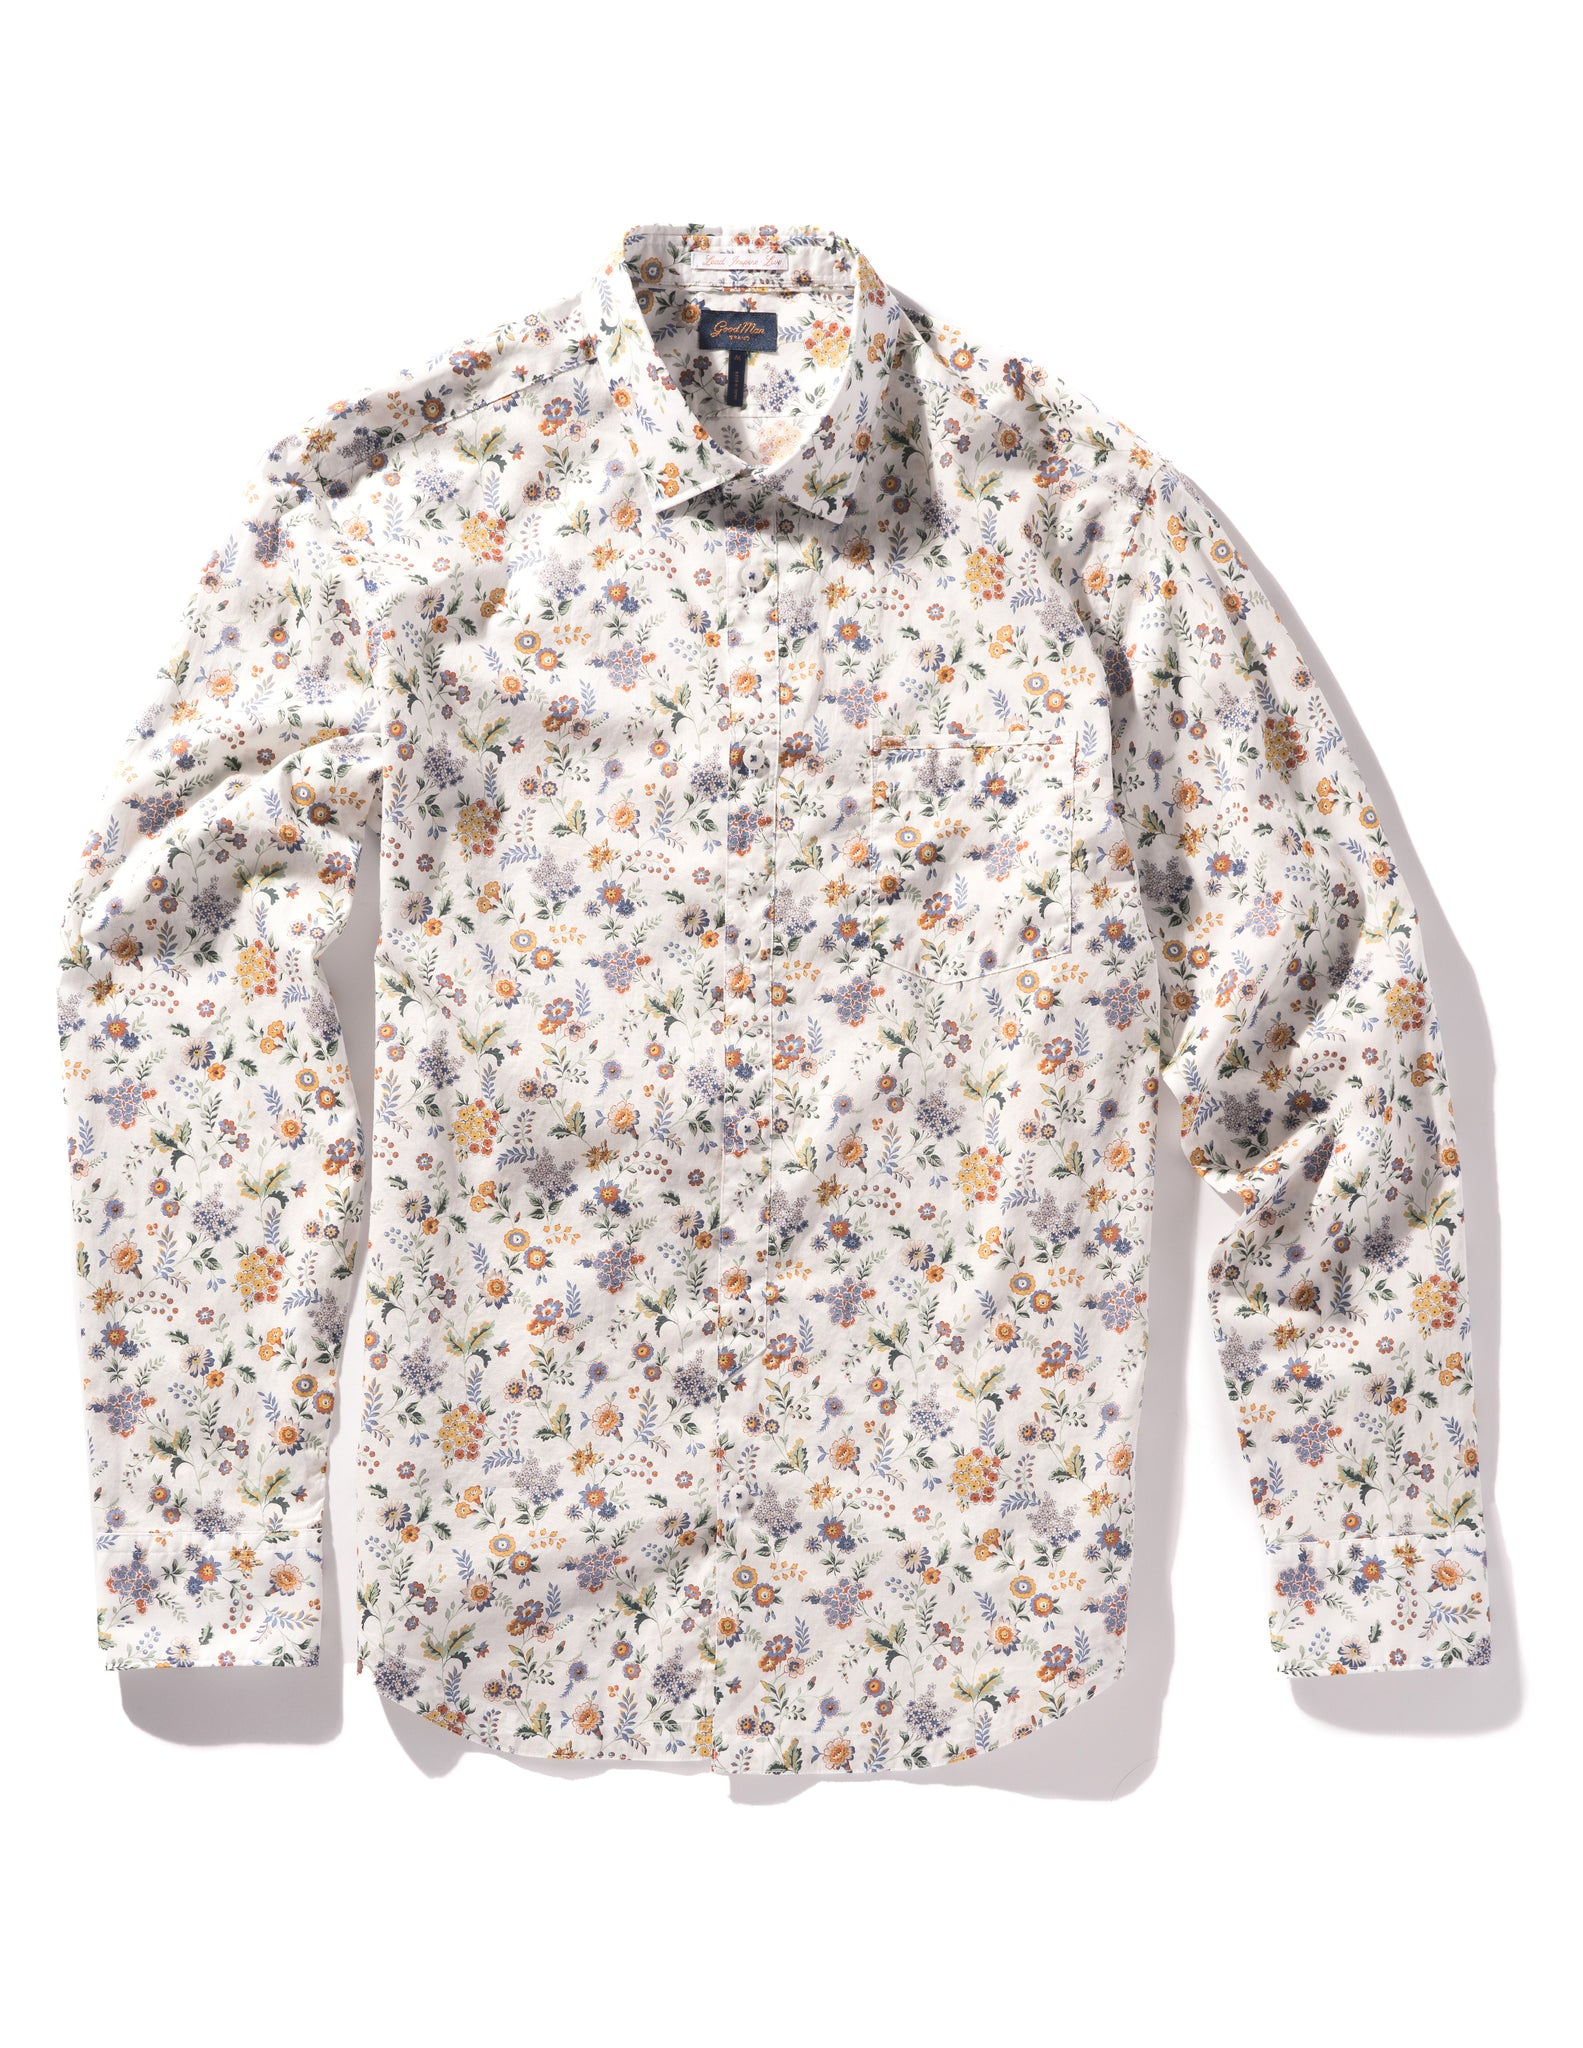 On-Point Print Shirt - Yellow Floral Street